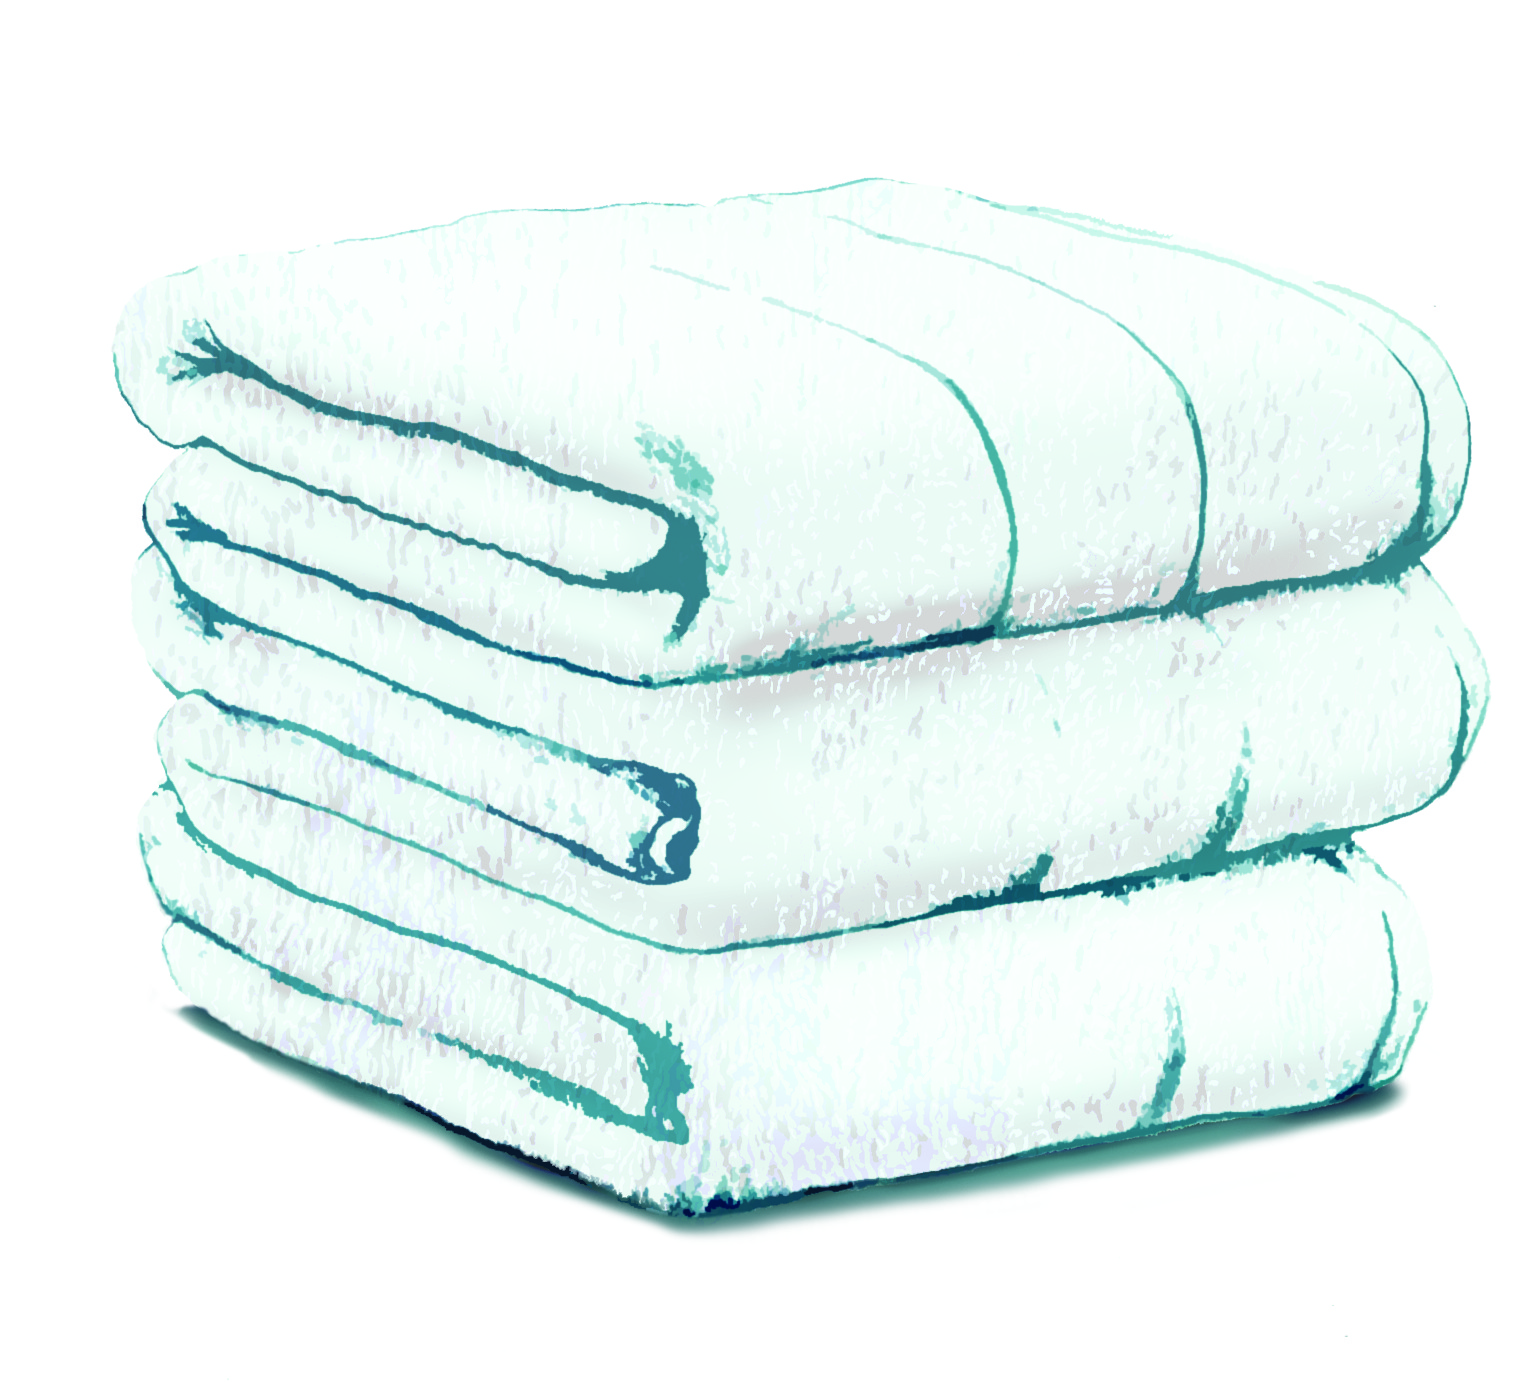 Sketch of carefully folded towels